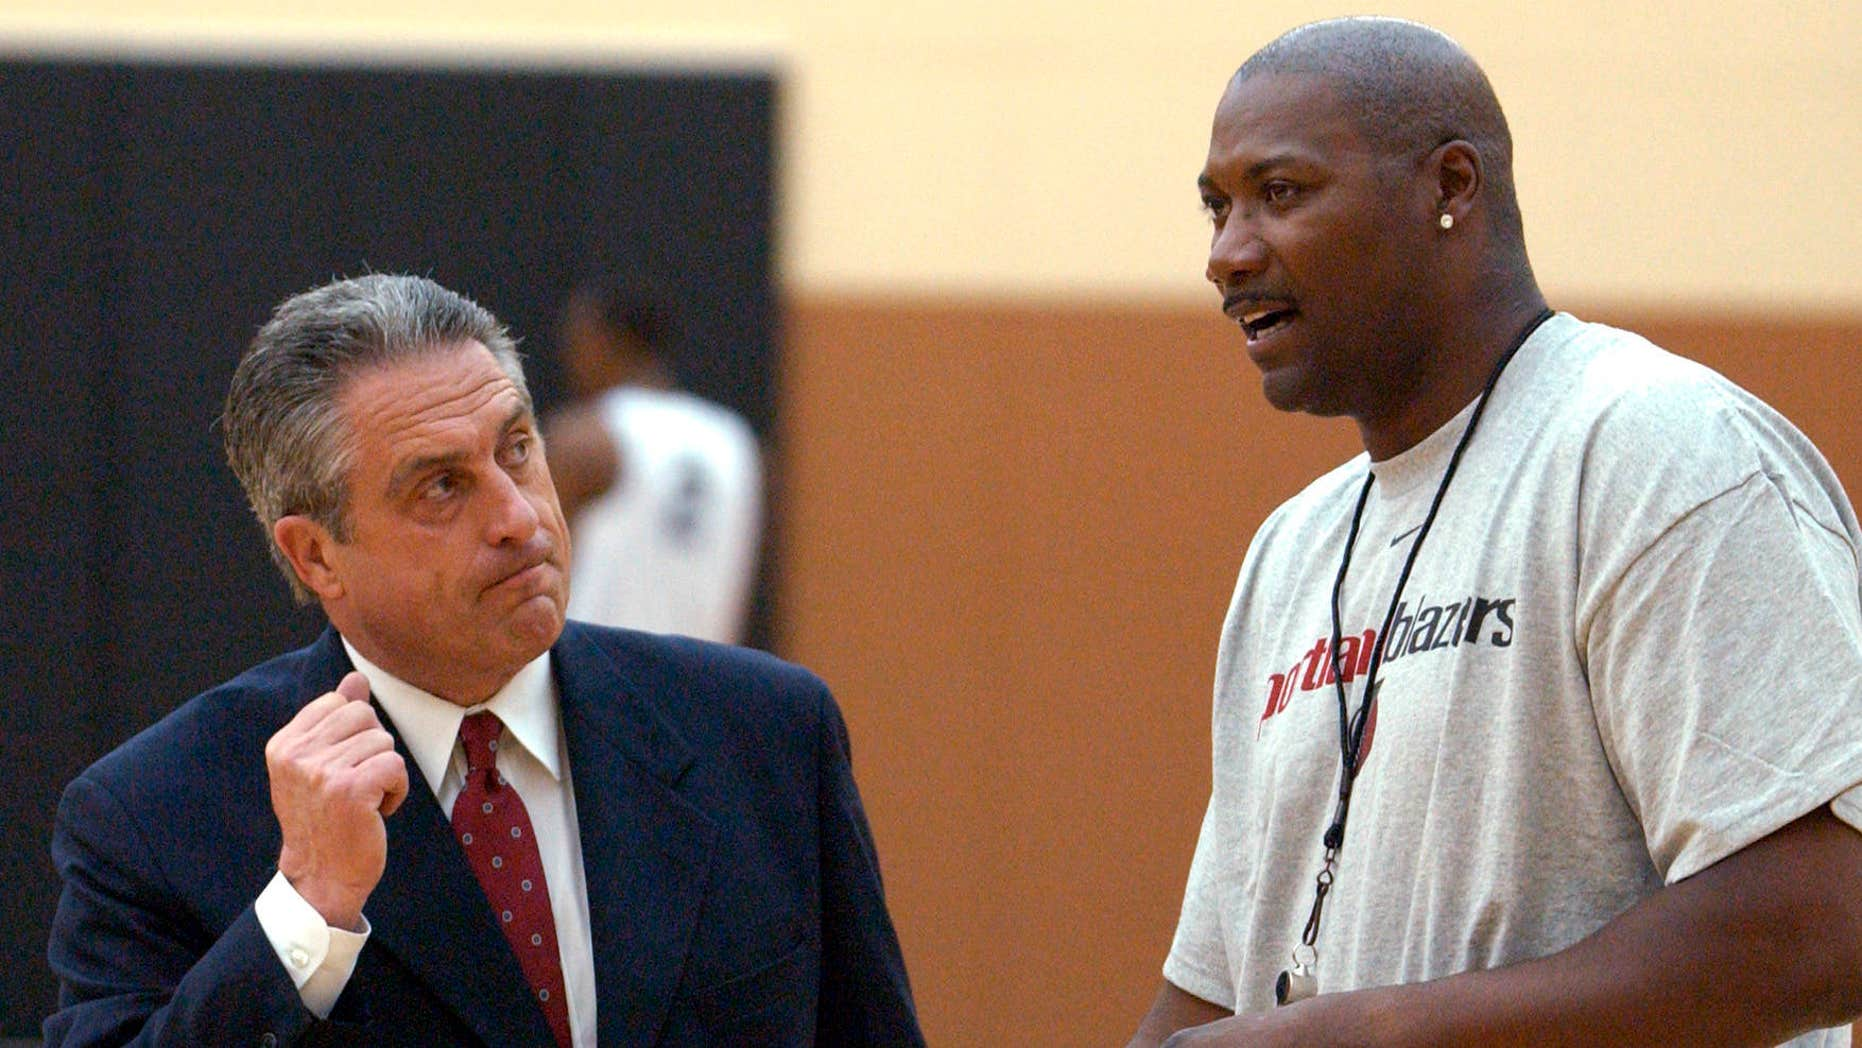 July 16, 2003: Portland Trail Blazers general manager John Nash, left, chats with assistant coach Jerome Kersey after the NBA basketball team's practice in Tualatin, Ore.